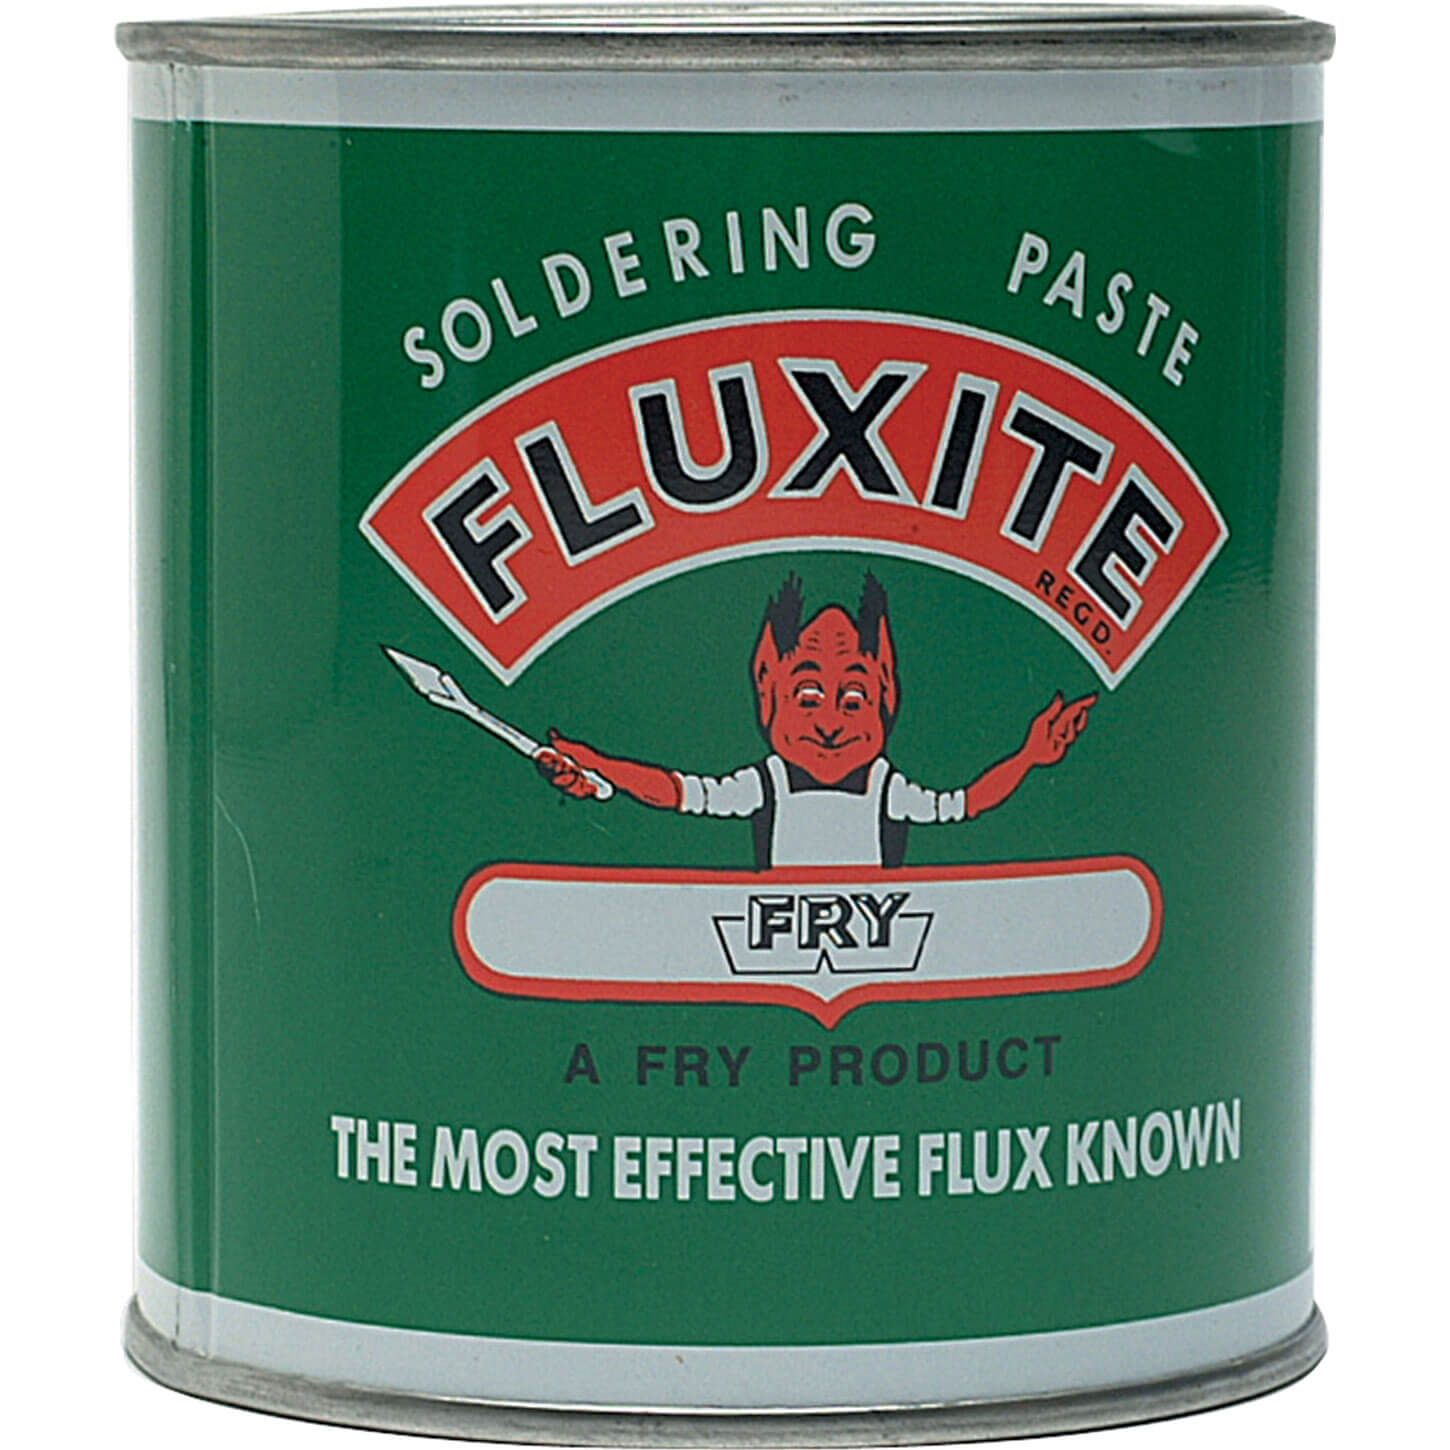 Image of Fluxite Tin Soldering Paste 450g